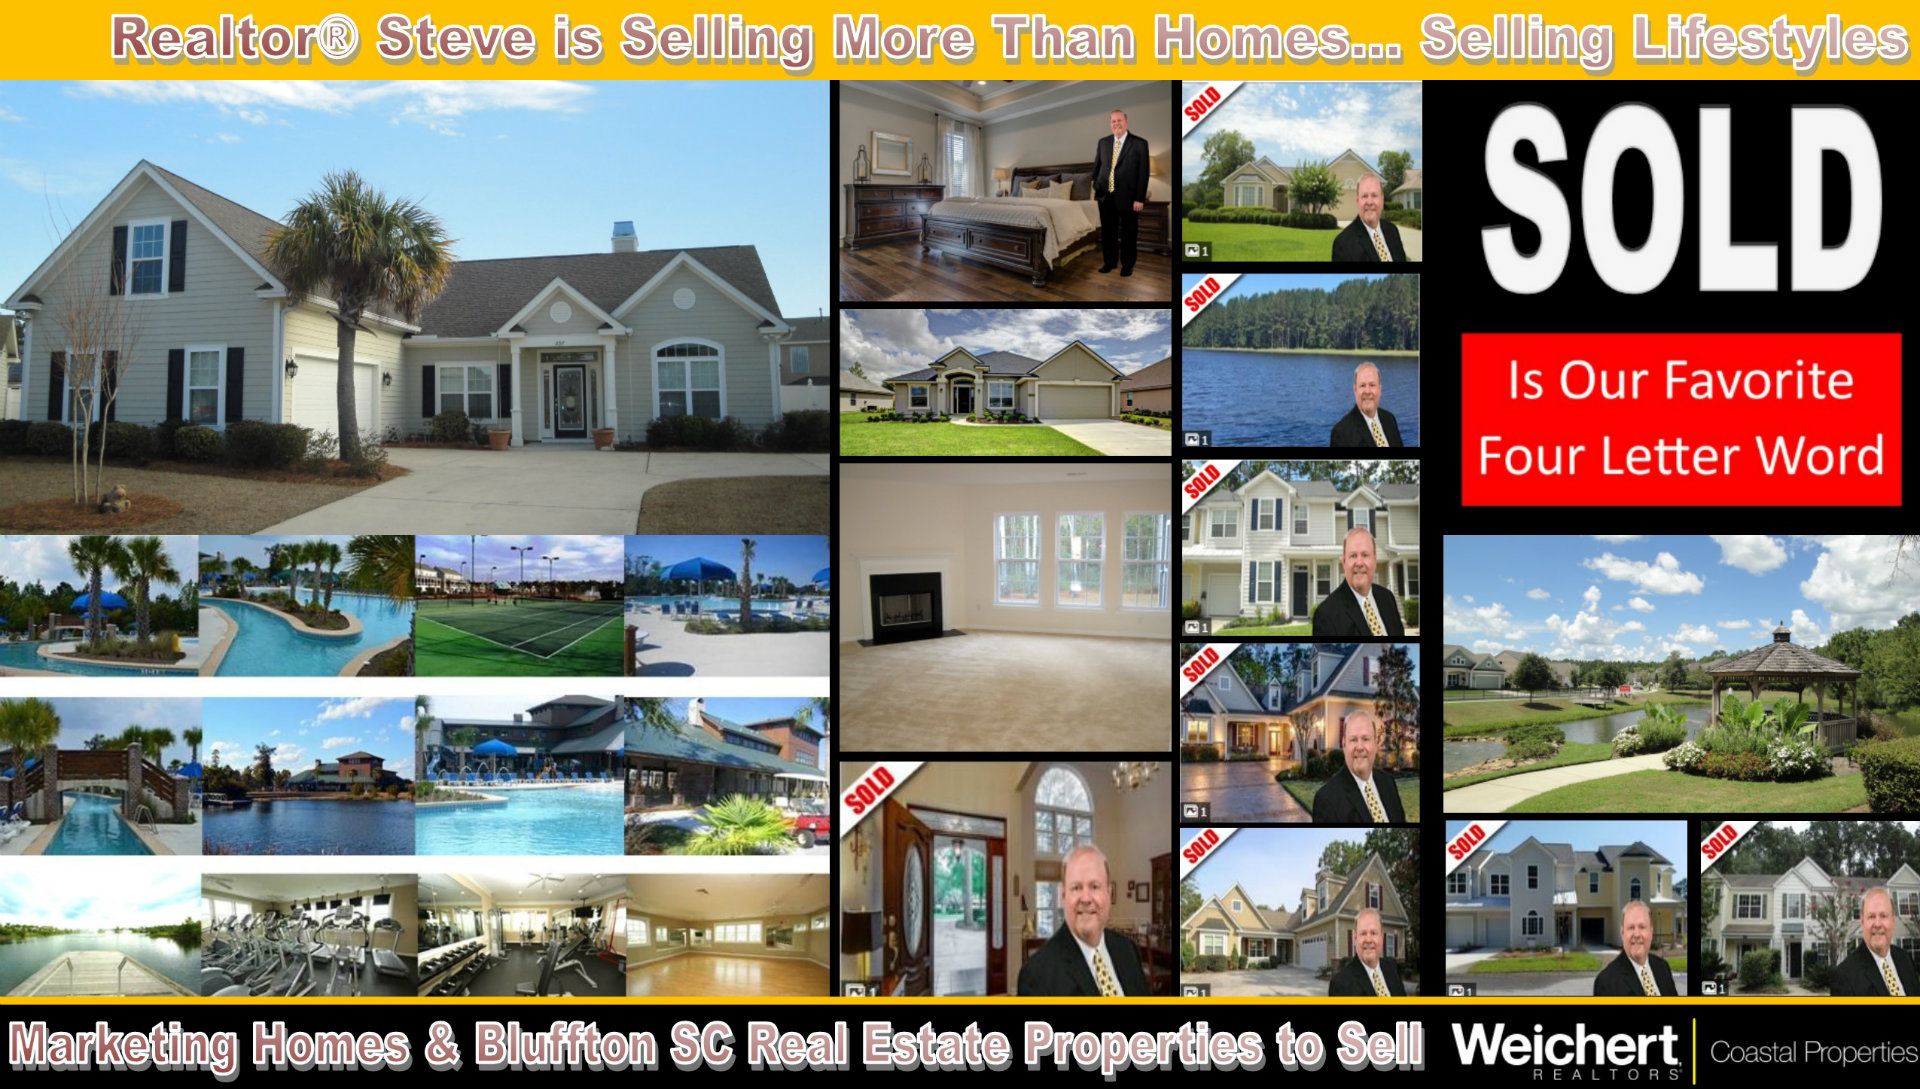 Realtor, Steve Wallace, Markets, Sells, Bluffton SC, Real Estate, Homes, Lifestyles